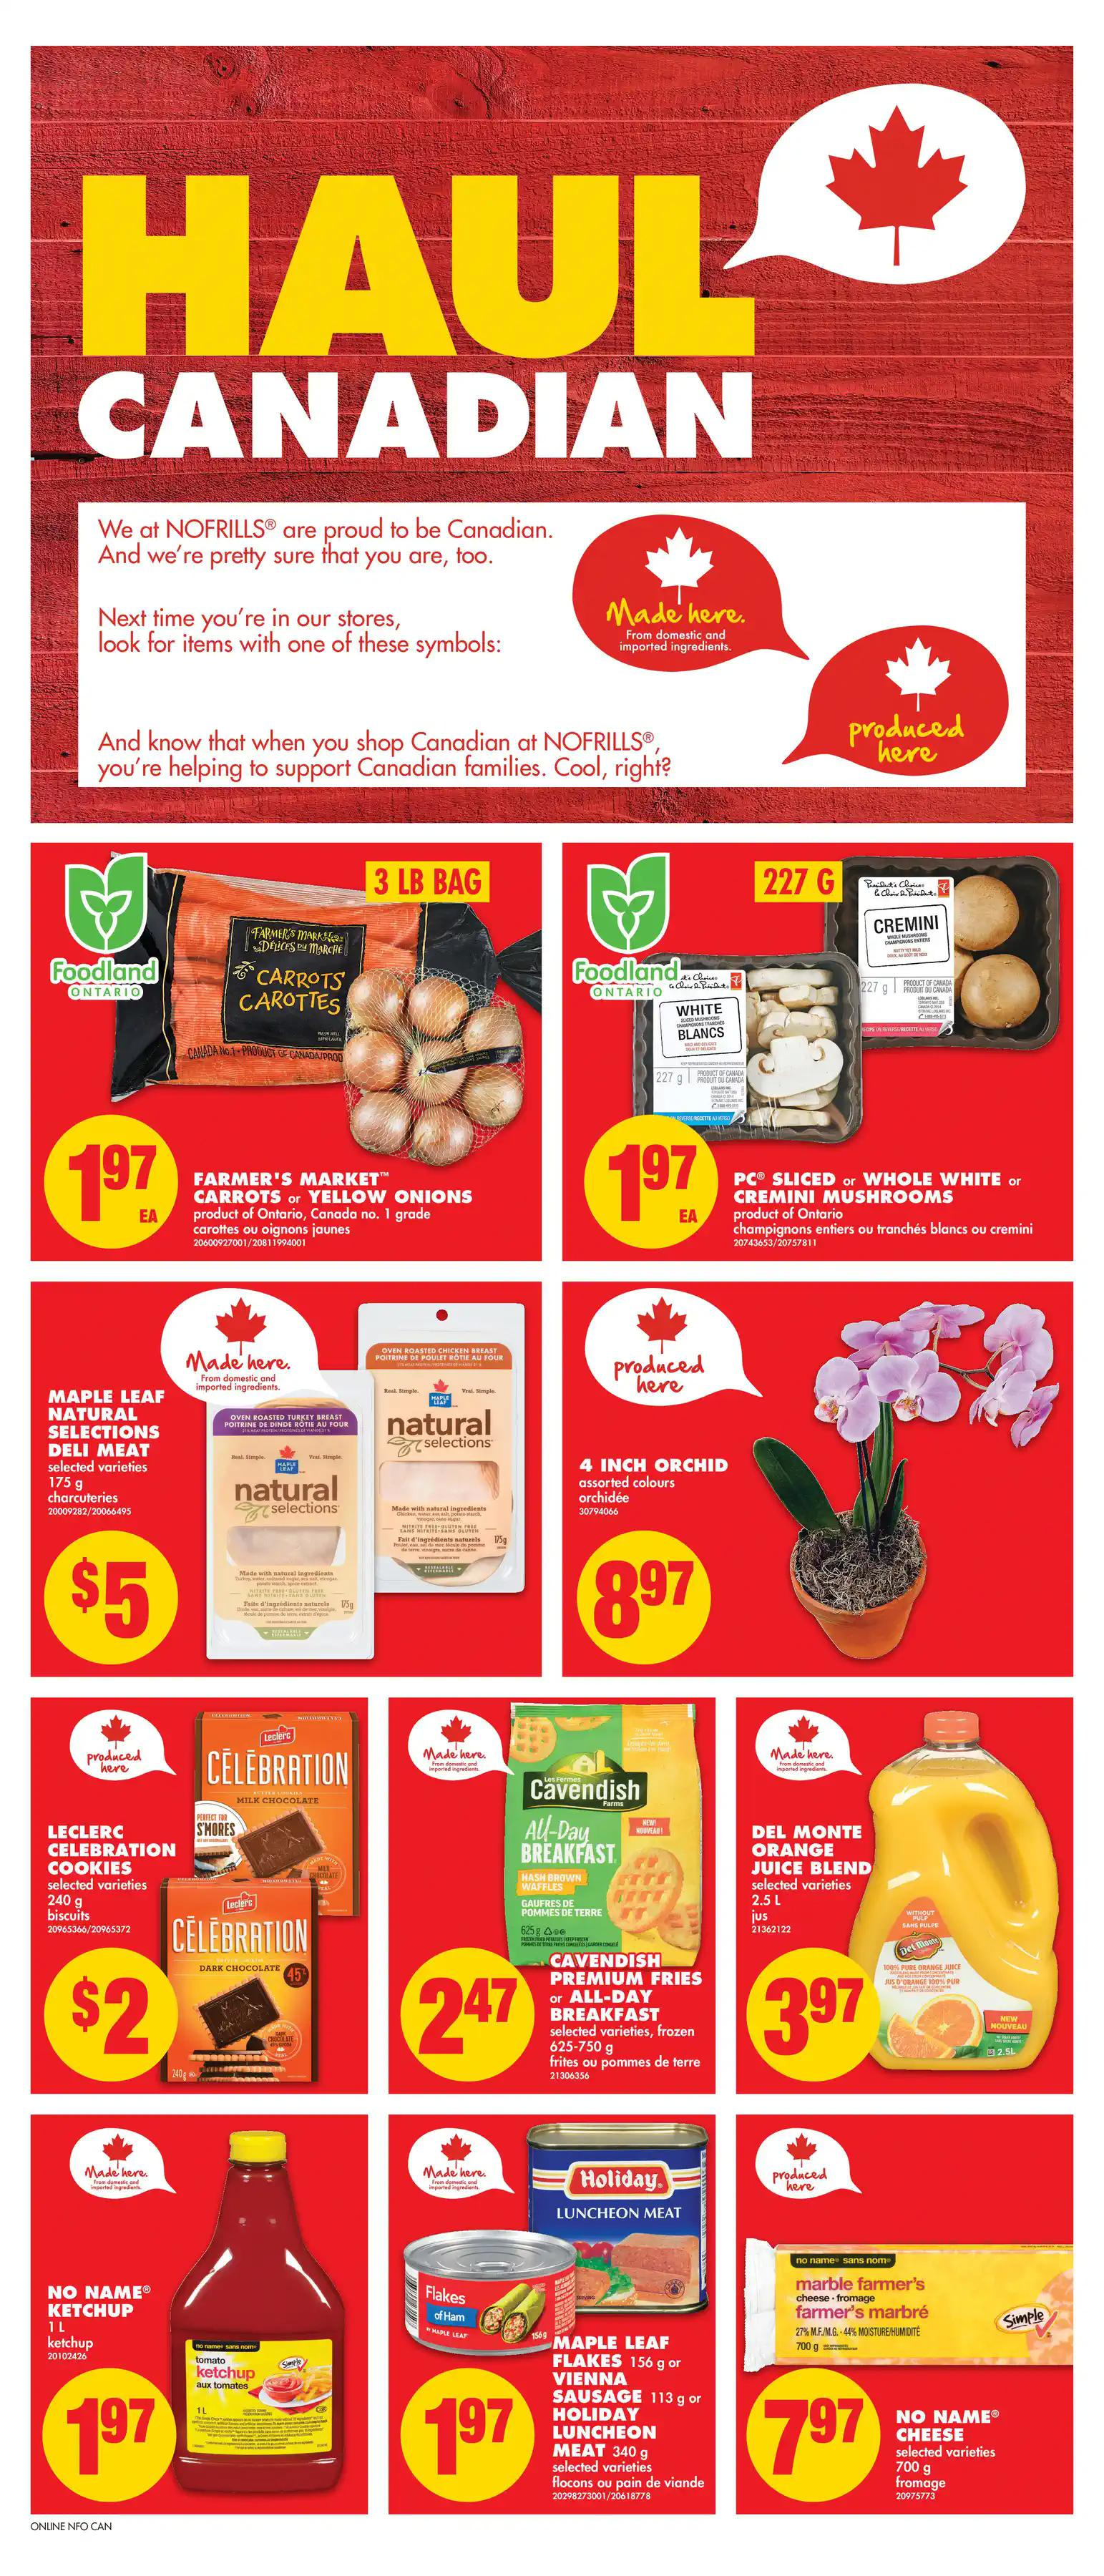 No Frills - Weekly Flyer Specials - Page 2